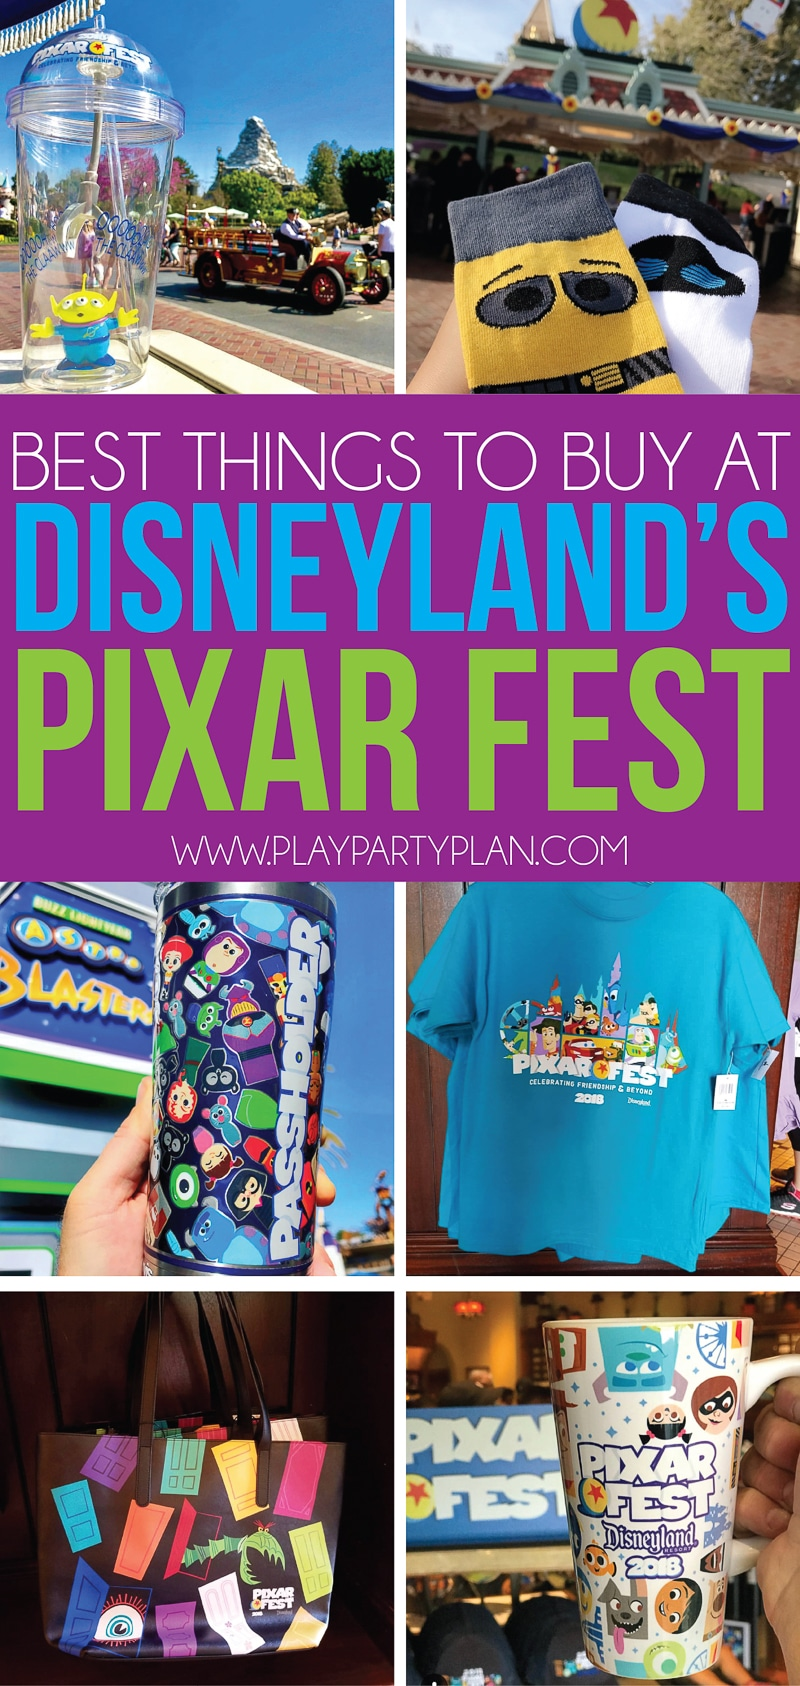 The best things to buy at Disneyland's Pixar Fest! And a great guide to what to eat and do too!